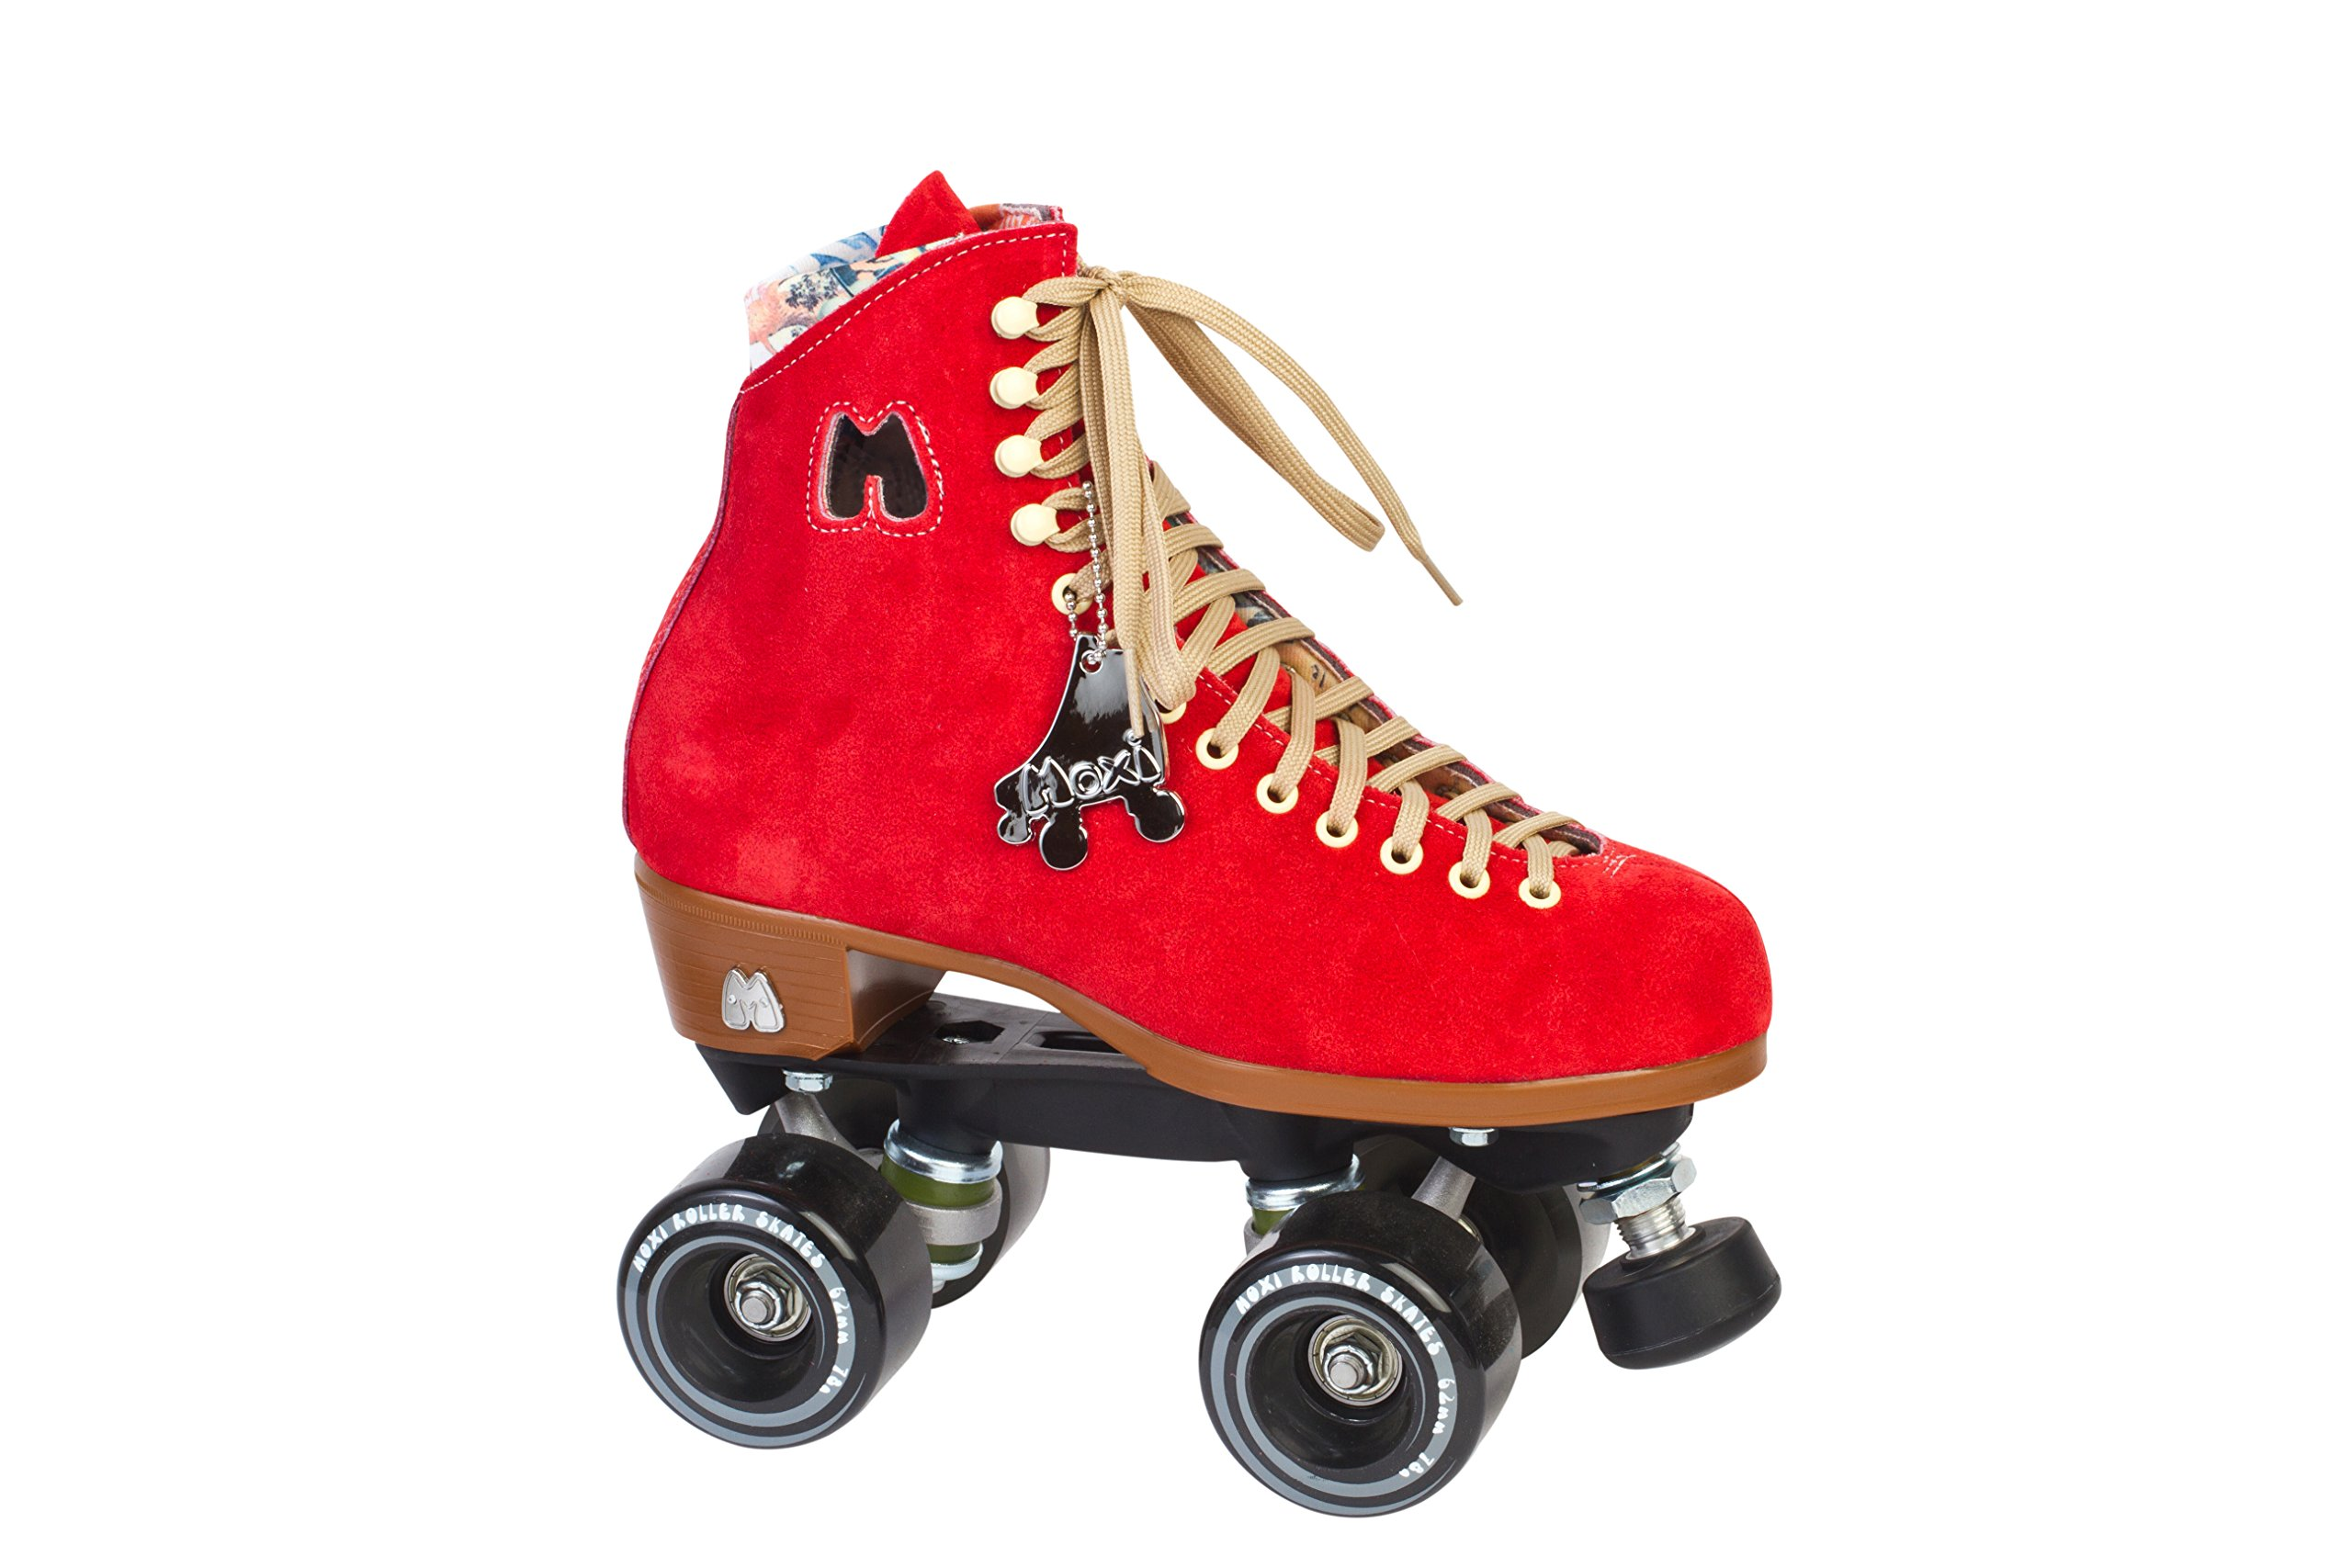 Moxi Lolly Roller Skates Poppy Red Size 4 by Moxi Roller Skates